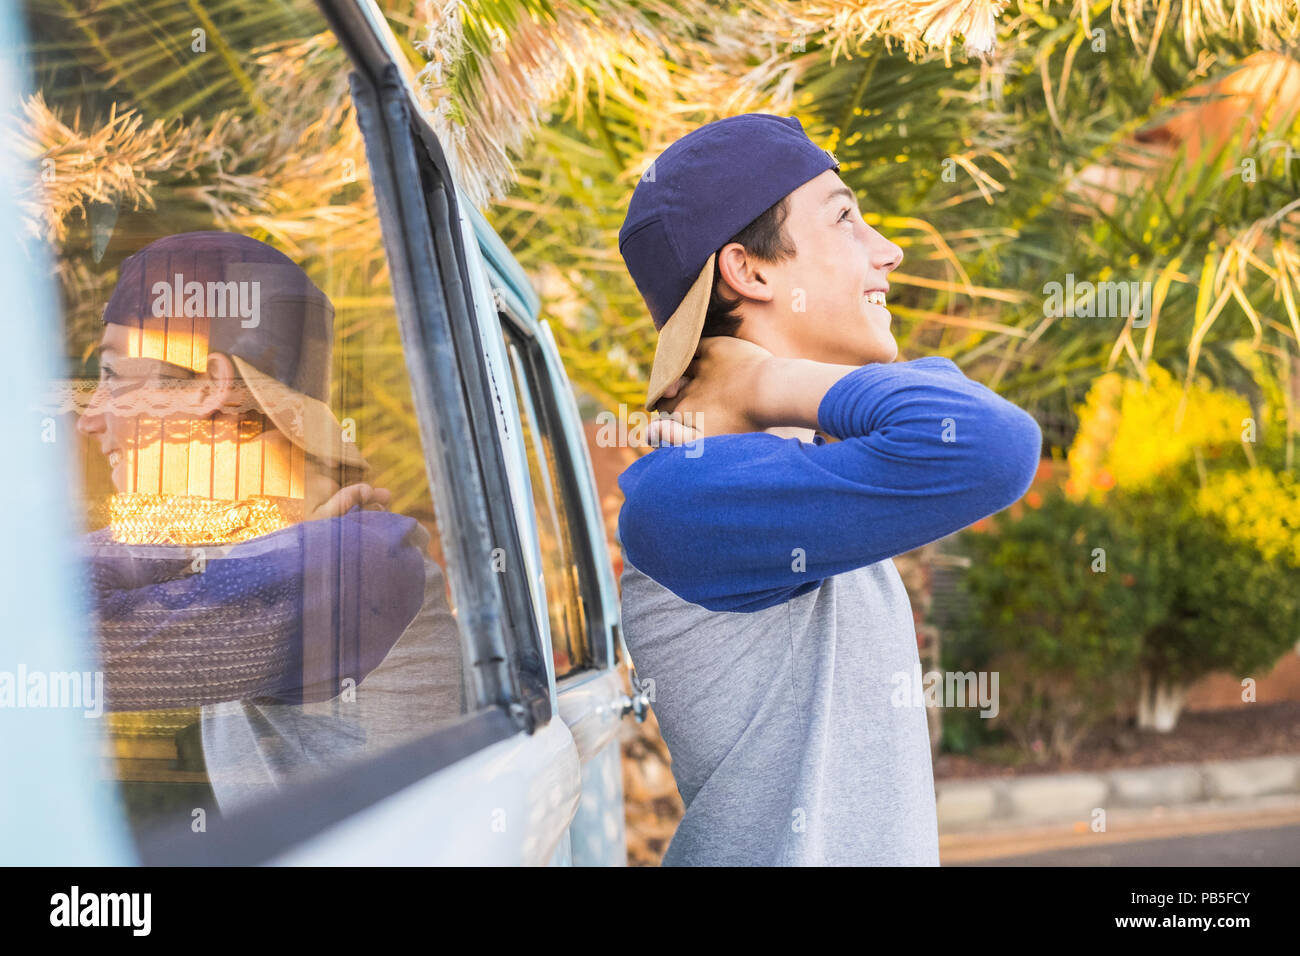 beautiful male teenager in casual dress outdoor in leisure activity smiling and enjoying the tropical weather. mirrored in a vintage van vehicle - Stock Image